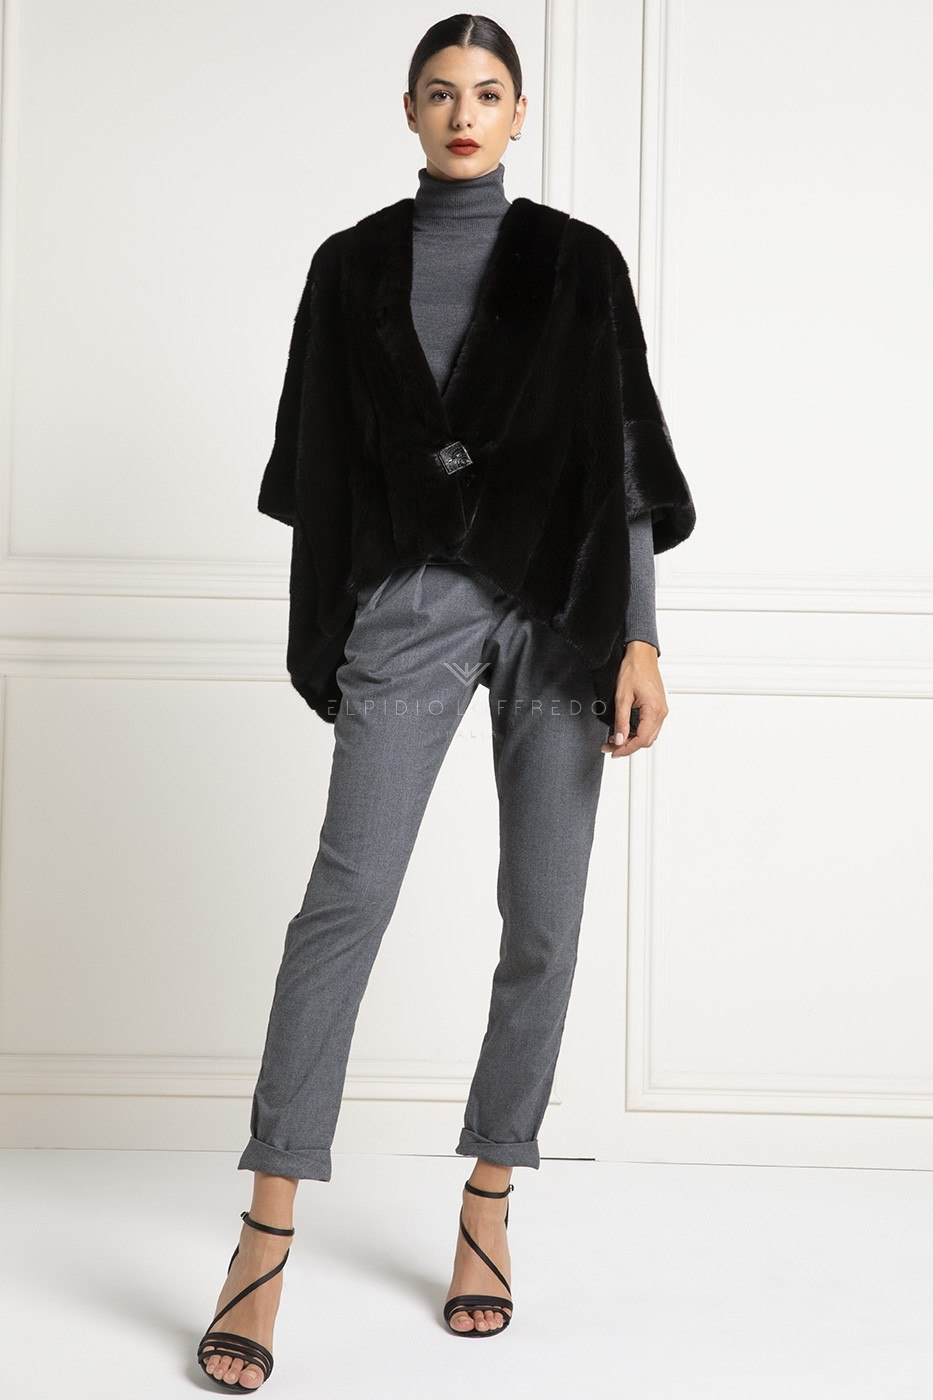 Blackglama Mink Cape with Round Collar - Length 70 cm